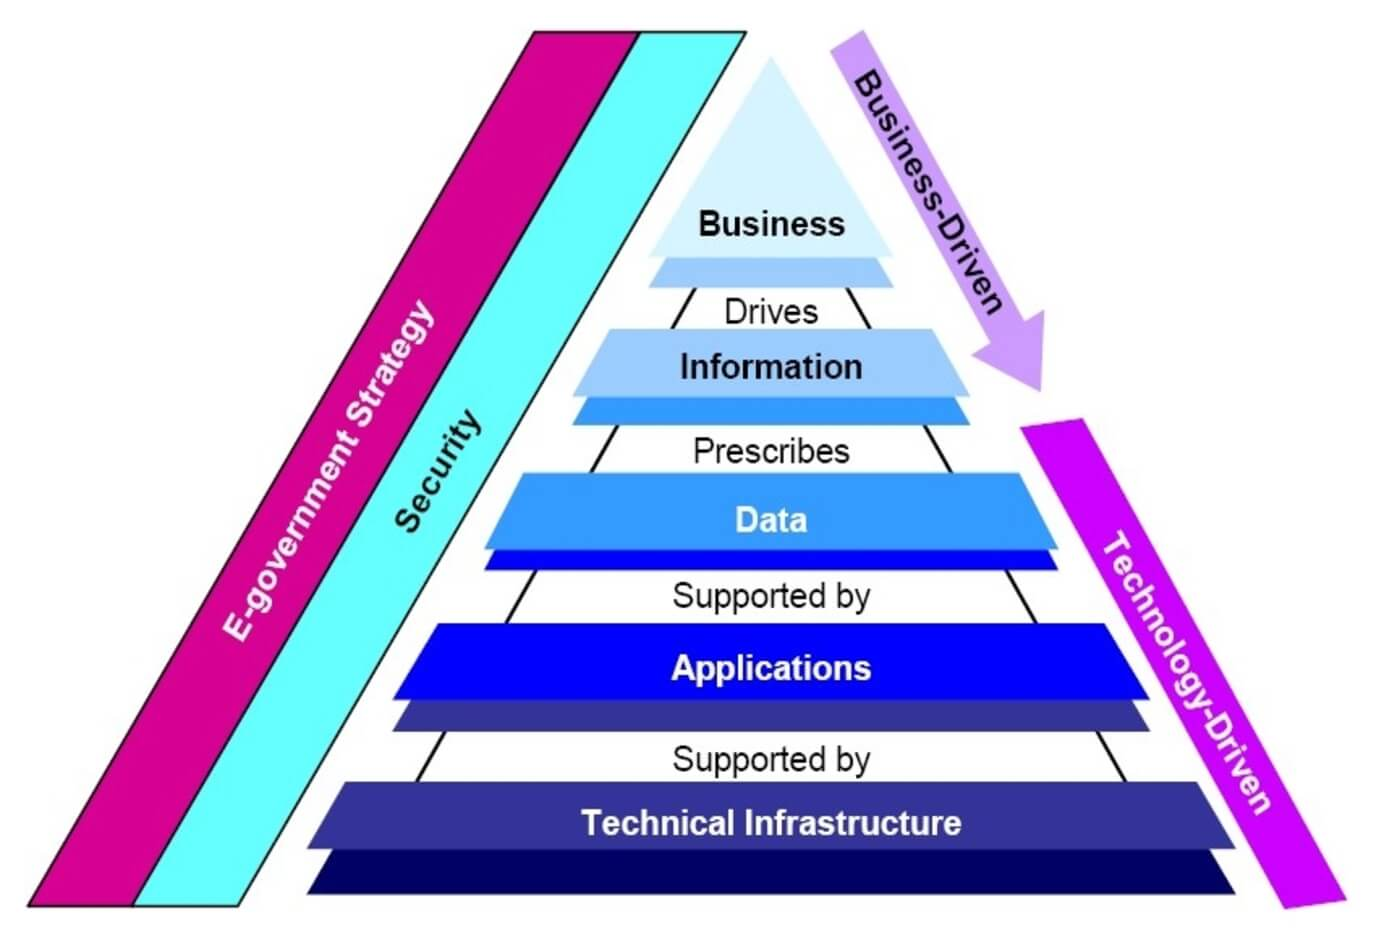 How Enterprise Architecture Supports Digital Transformation and IT Growth?